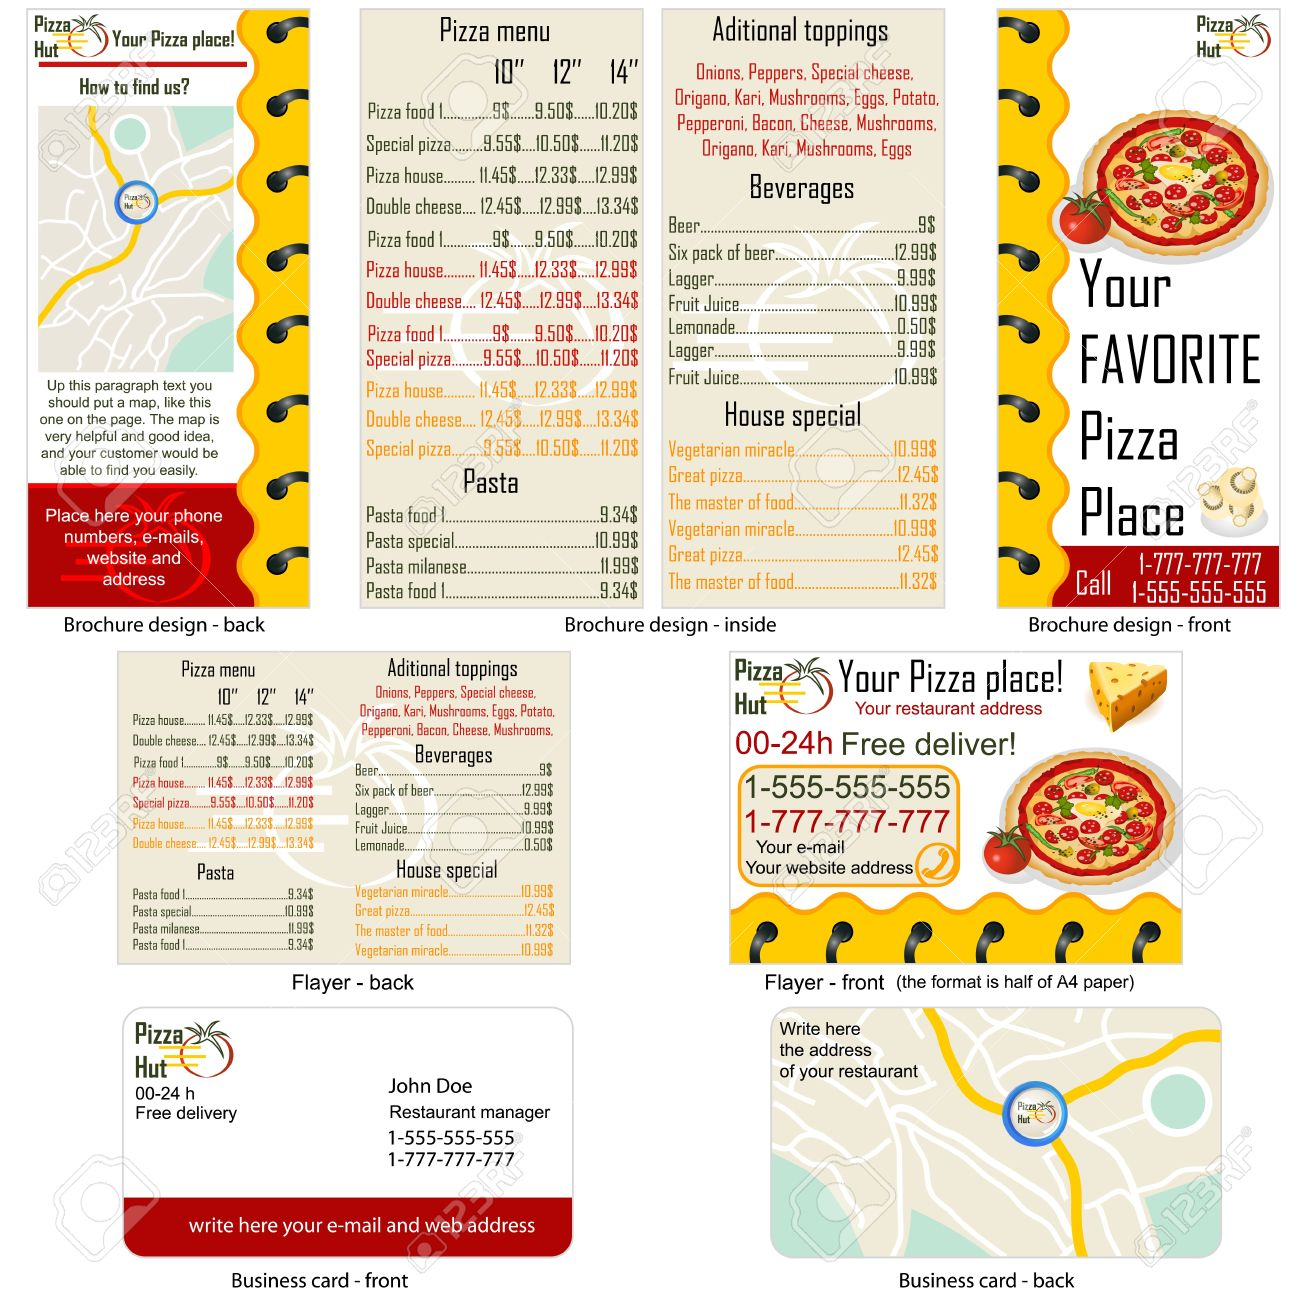 Pizza restaurant stationary - brochure design, flyer design and business card design in one package and fully editable. - 12321336